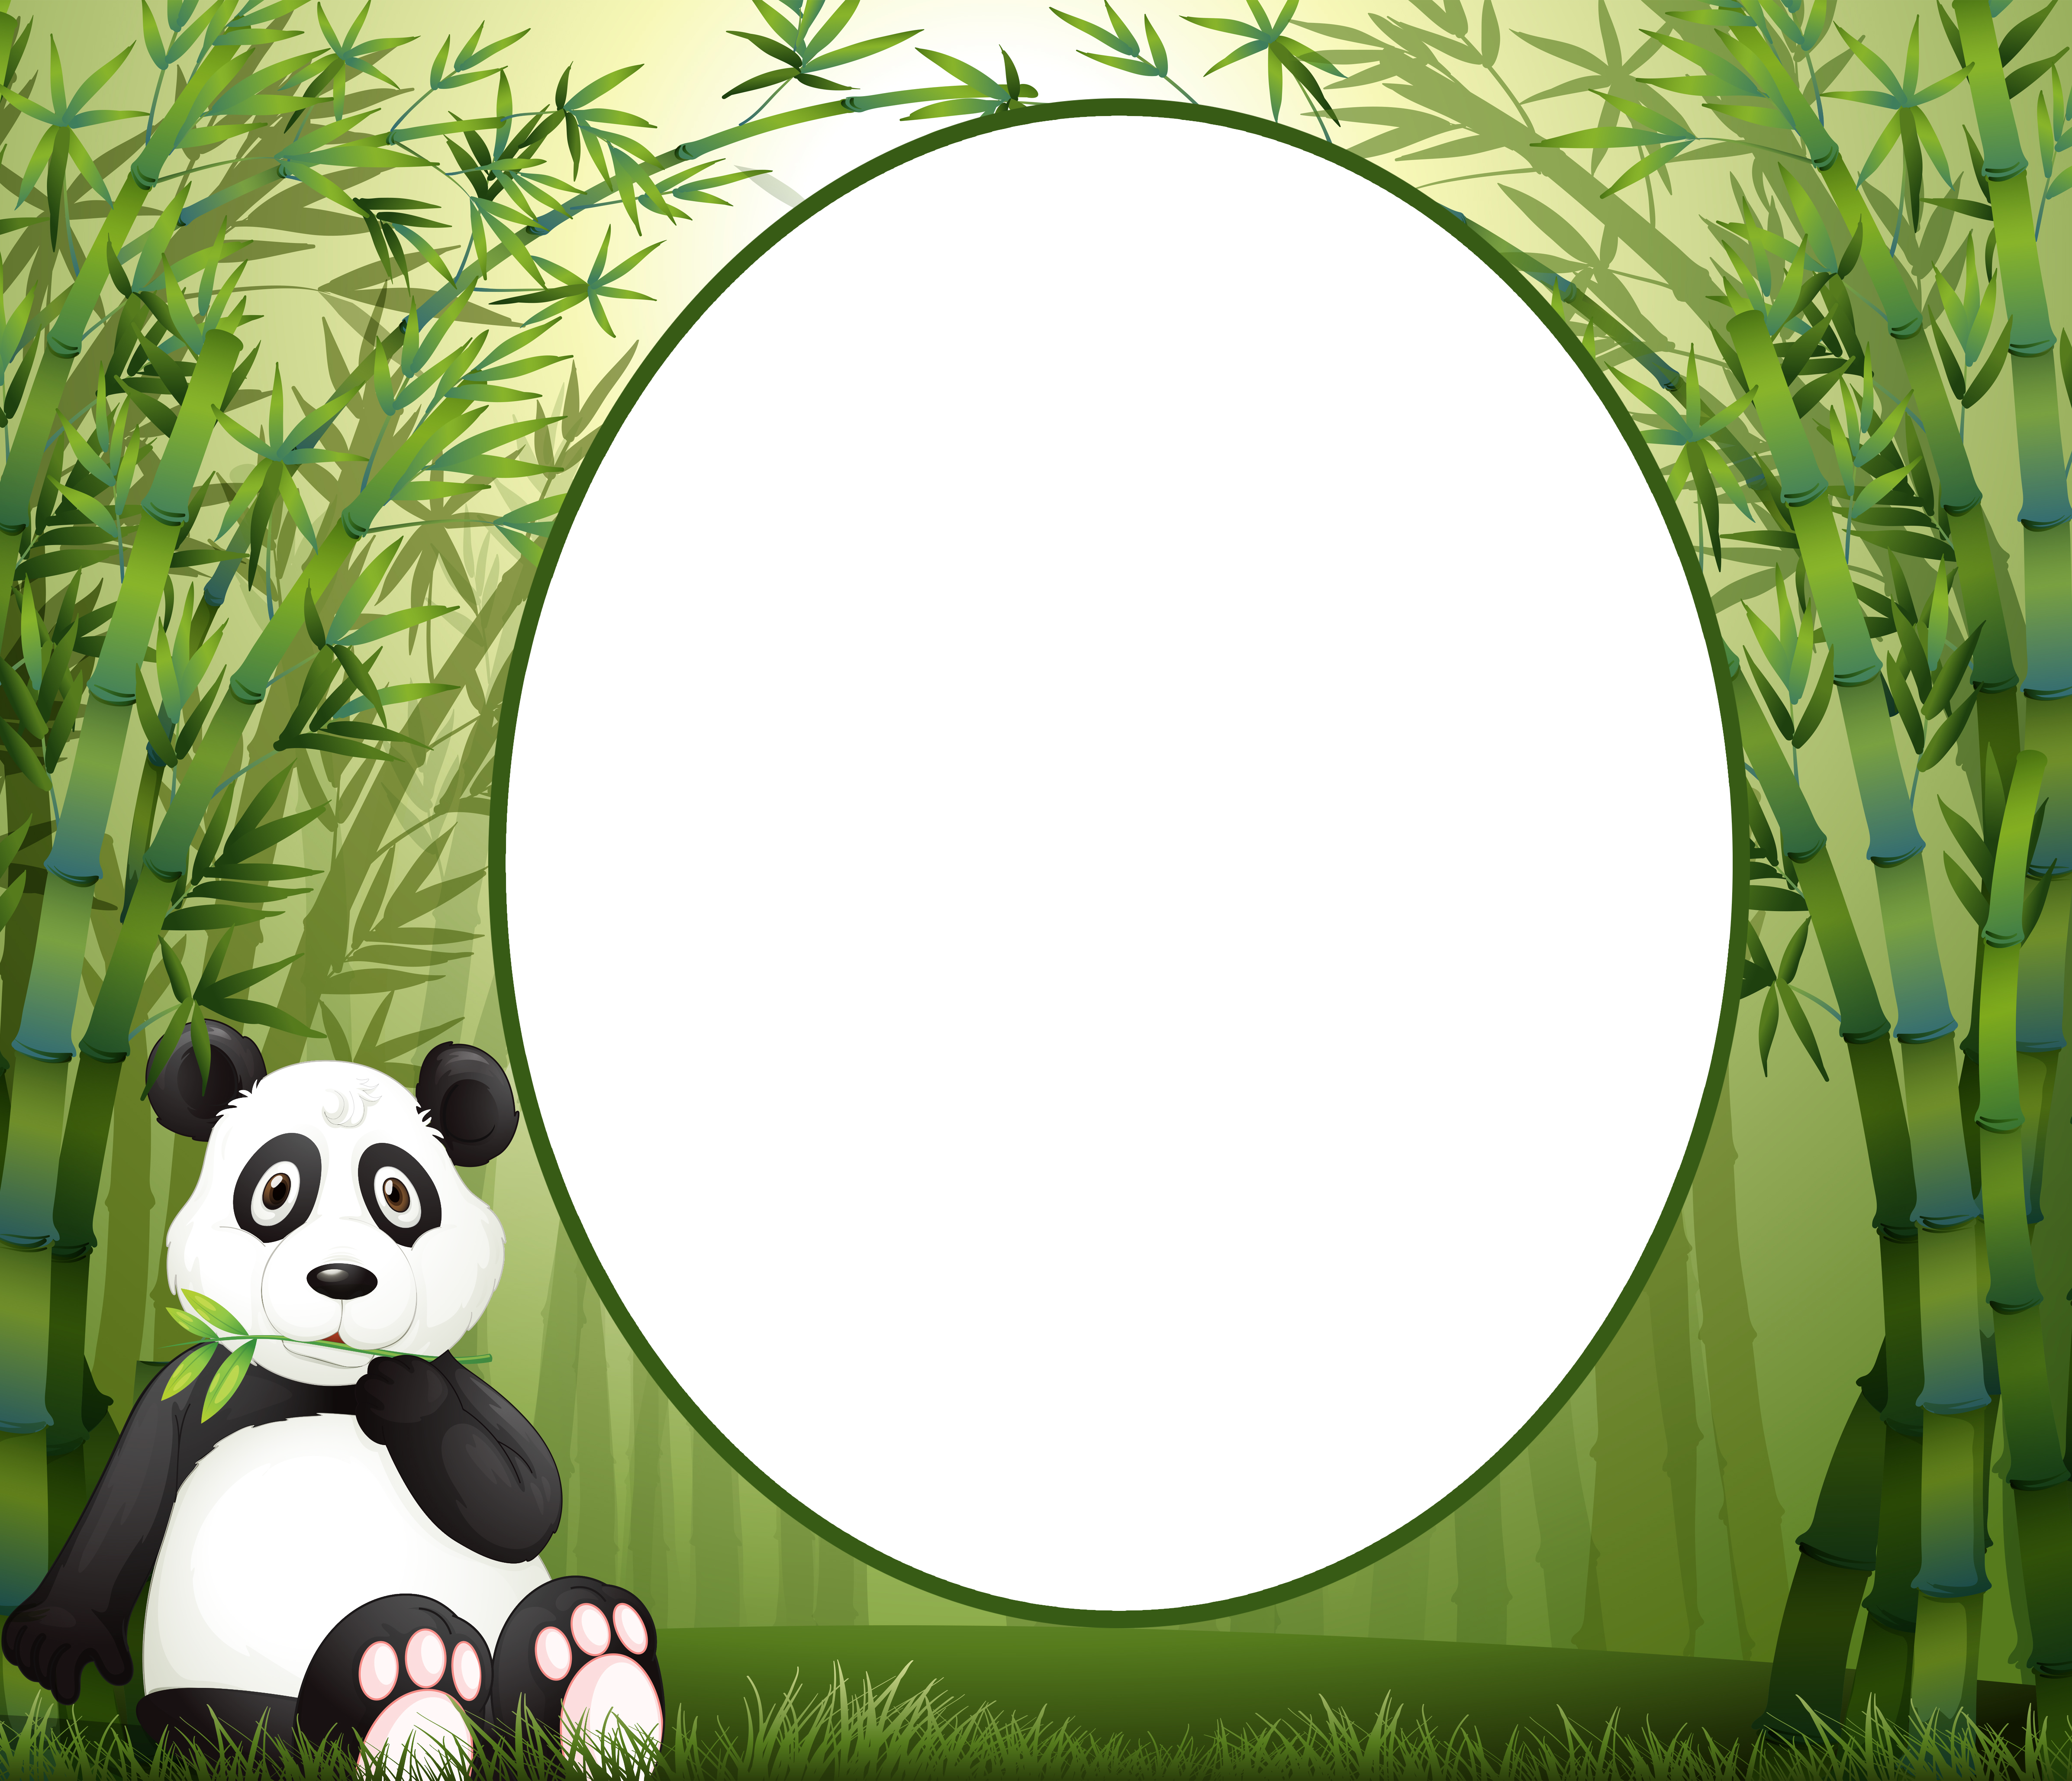 Png frame with cute. Environment clipart child